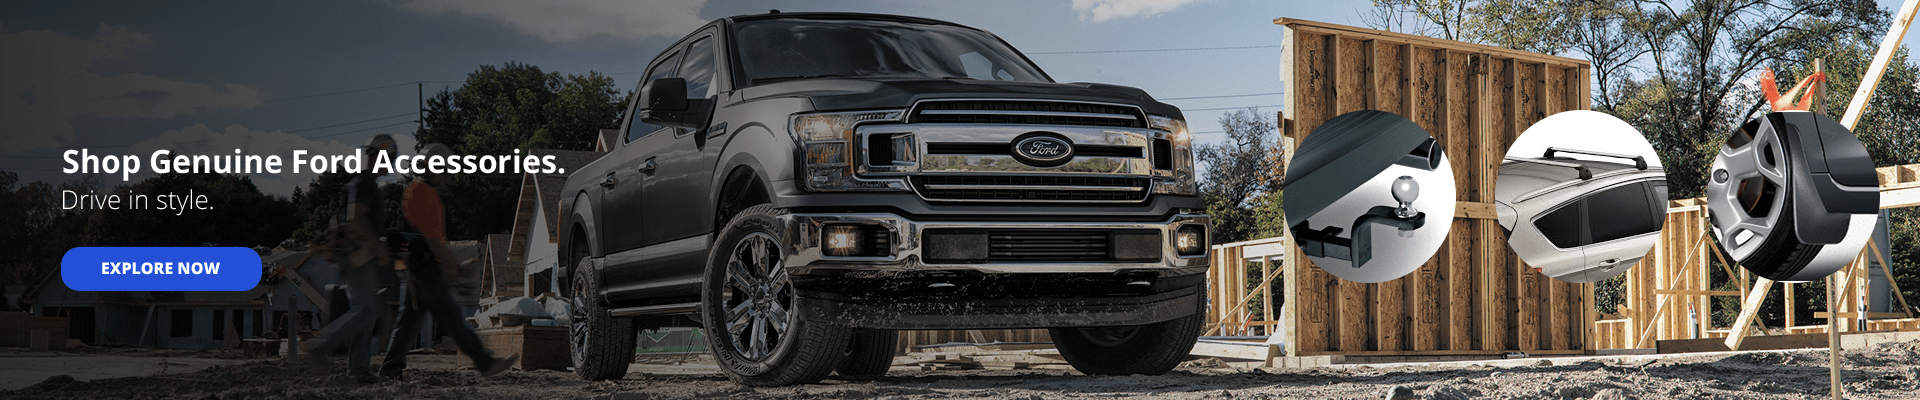 OEM Ford Accessories